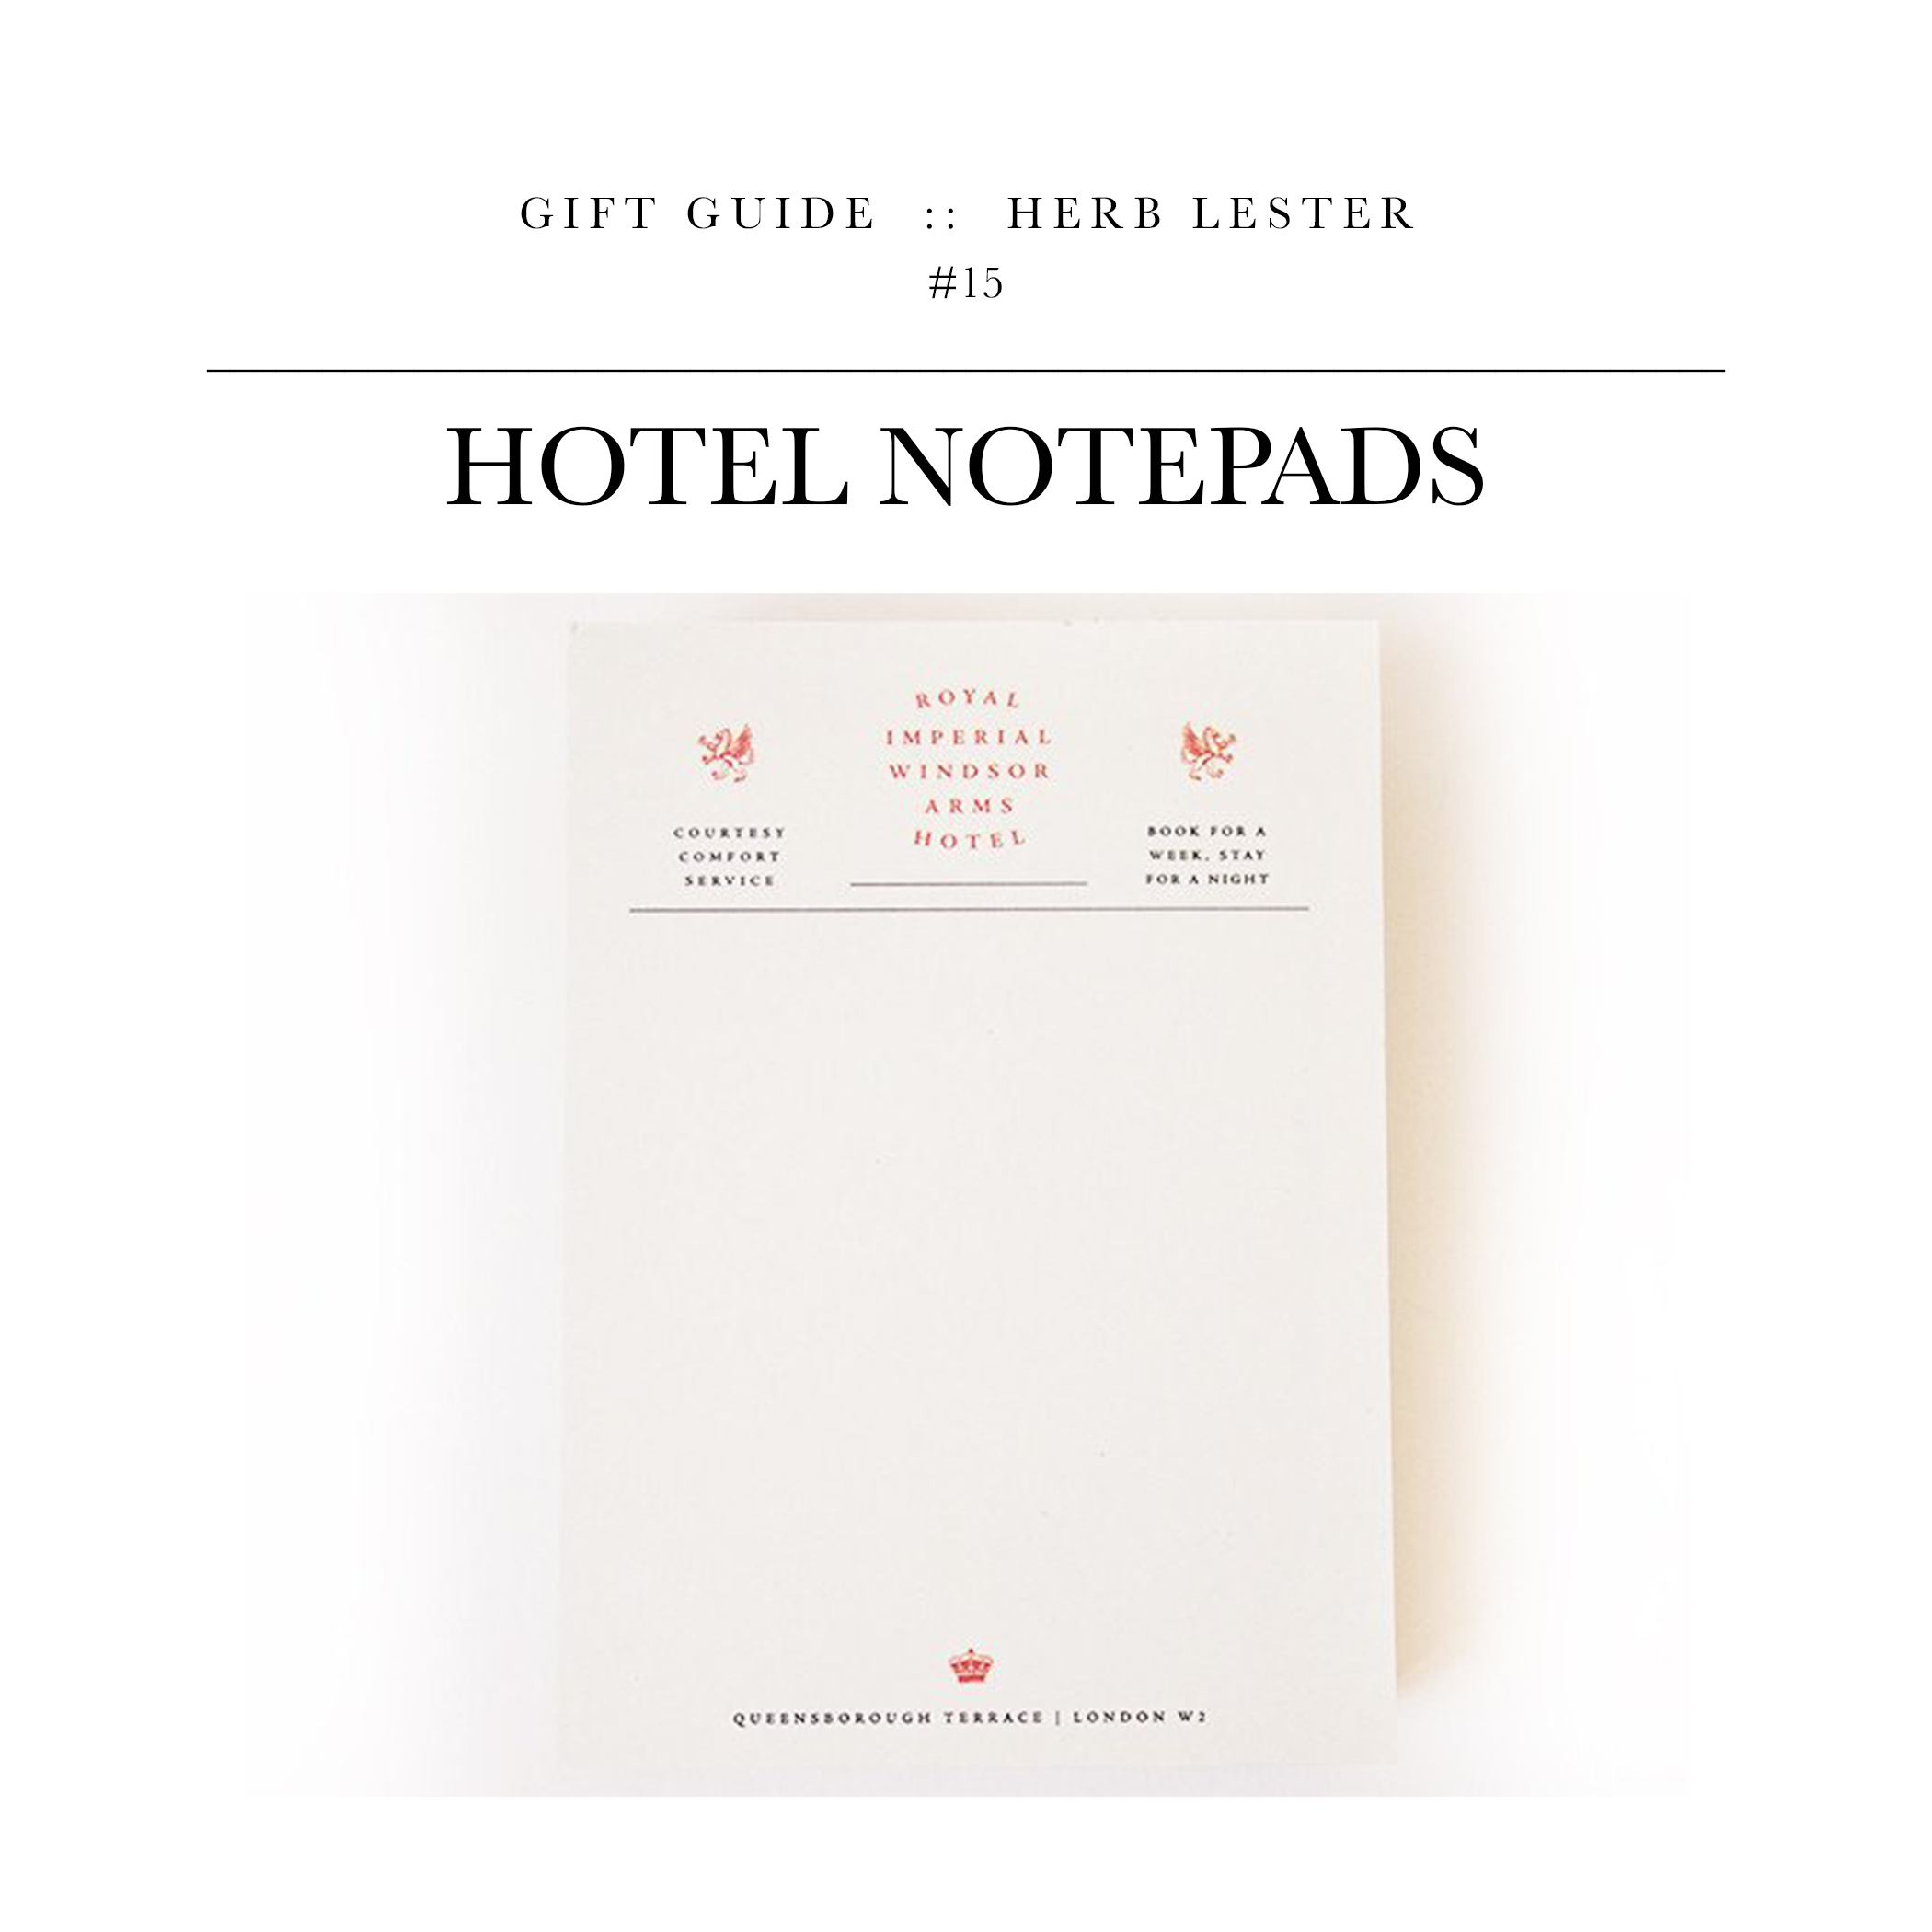 Hotel Notepads via Herb Lester // Replica notepads of hotels from iconic films. Great gift for someone who appreciates the older movies of past generations.